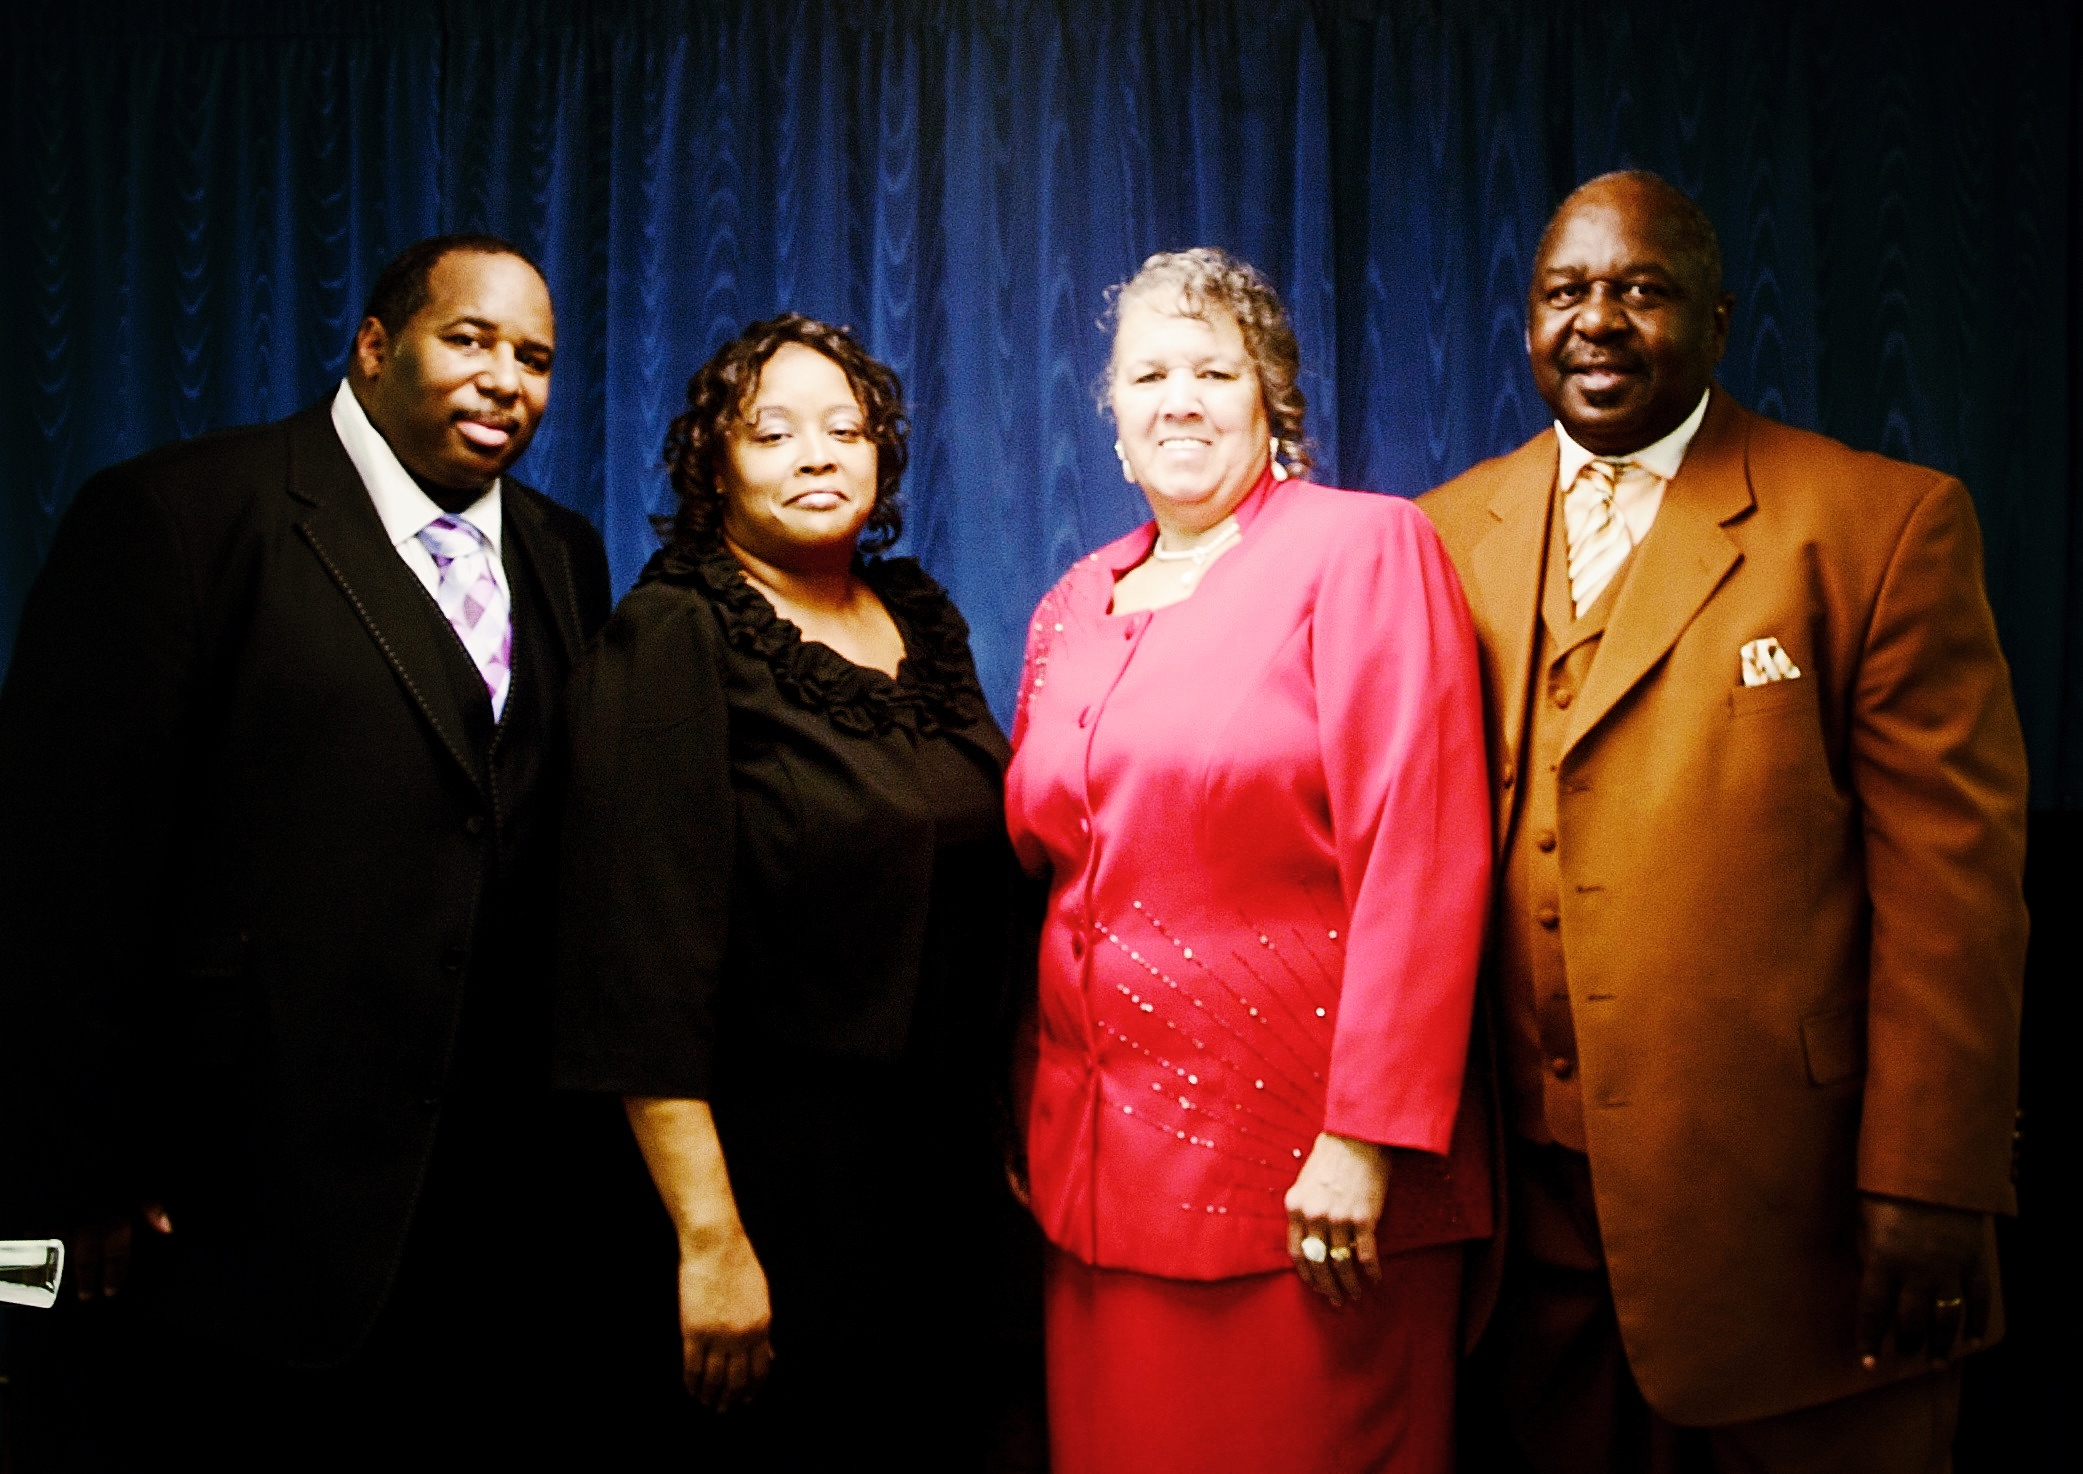 Pastor Gary & Lady Elaine Saunders - Bishop S.E. & Lady Connie Saunders